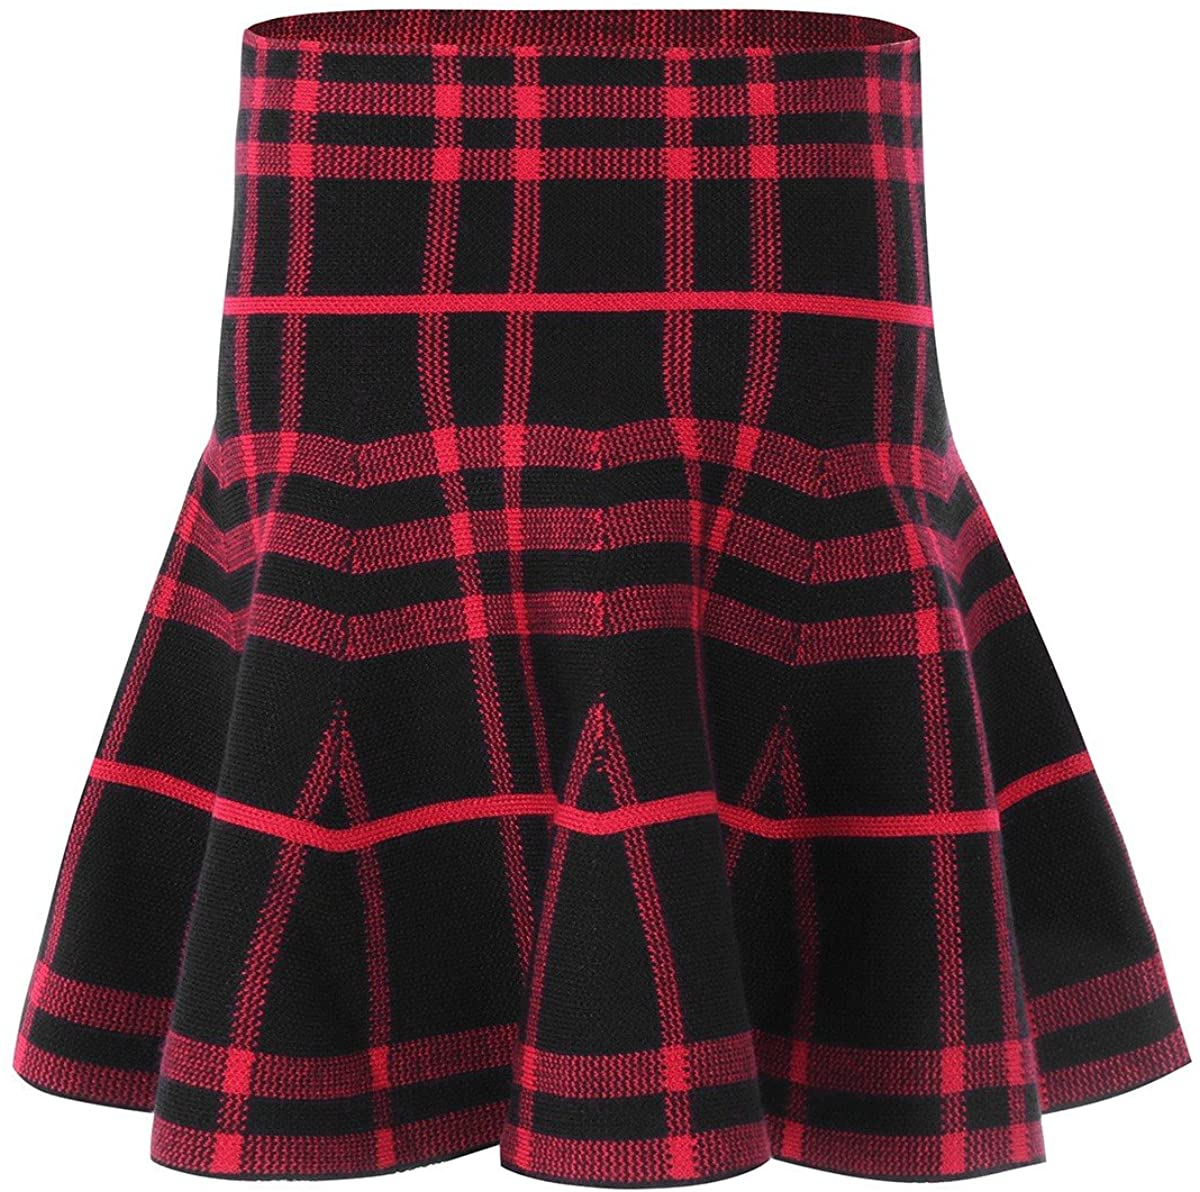 Freebily Girls Stretchy High-Waisted A Line Classic Miniskirt Knitted Flared Pleated Skater for Casual